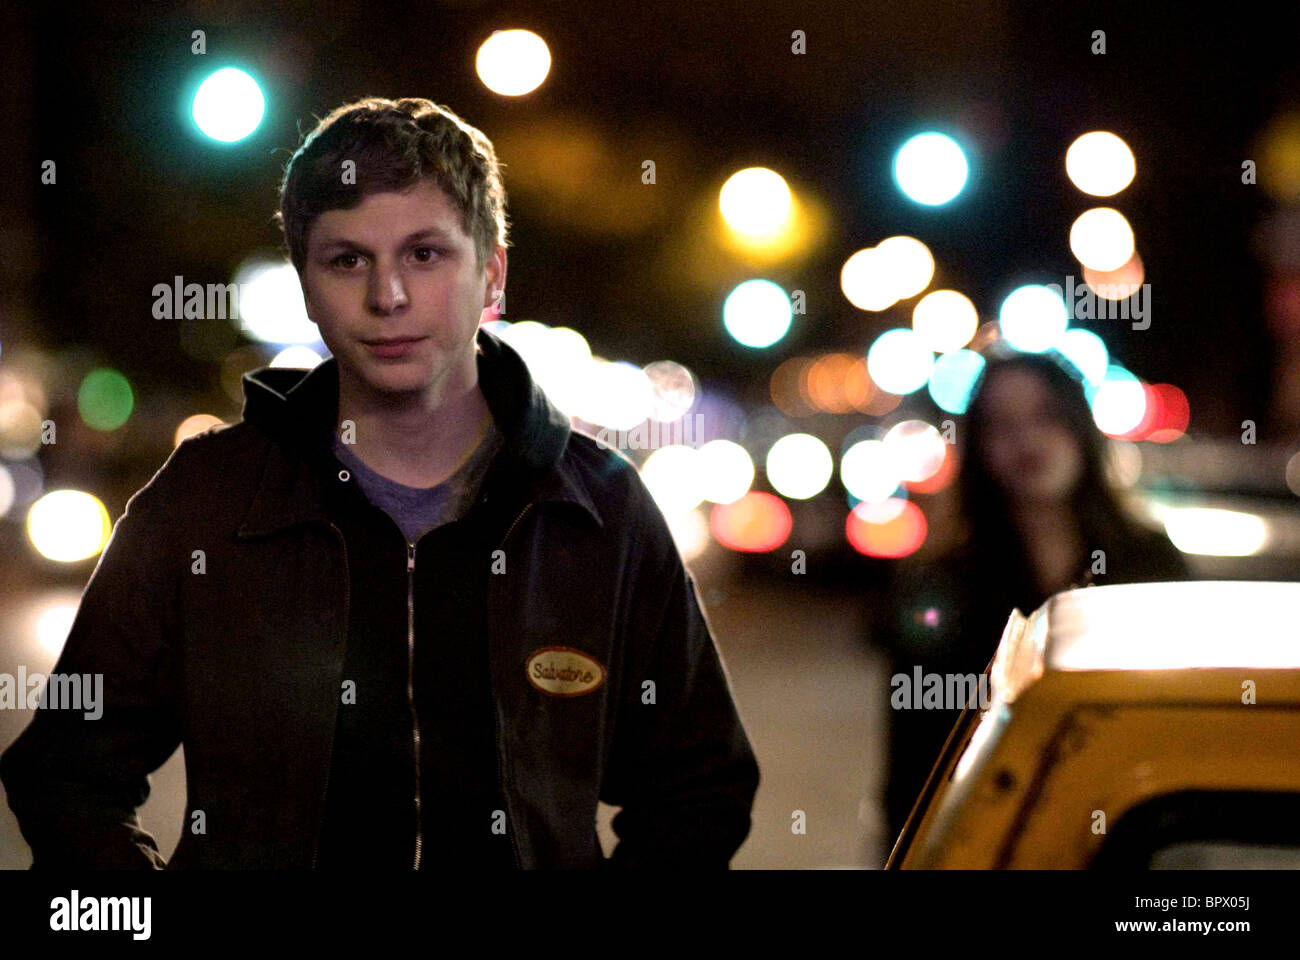 MICHAEL CERA NICK AND NORAH'S INFINITE PLAYLIST (2008) - Stock Image